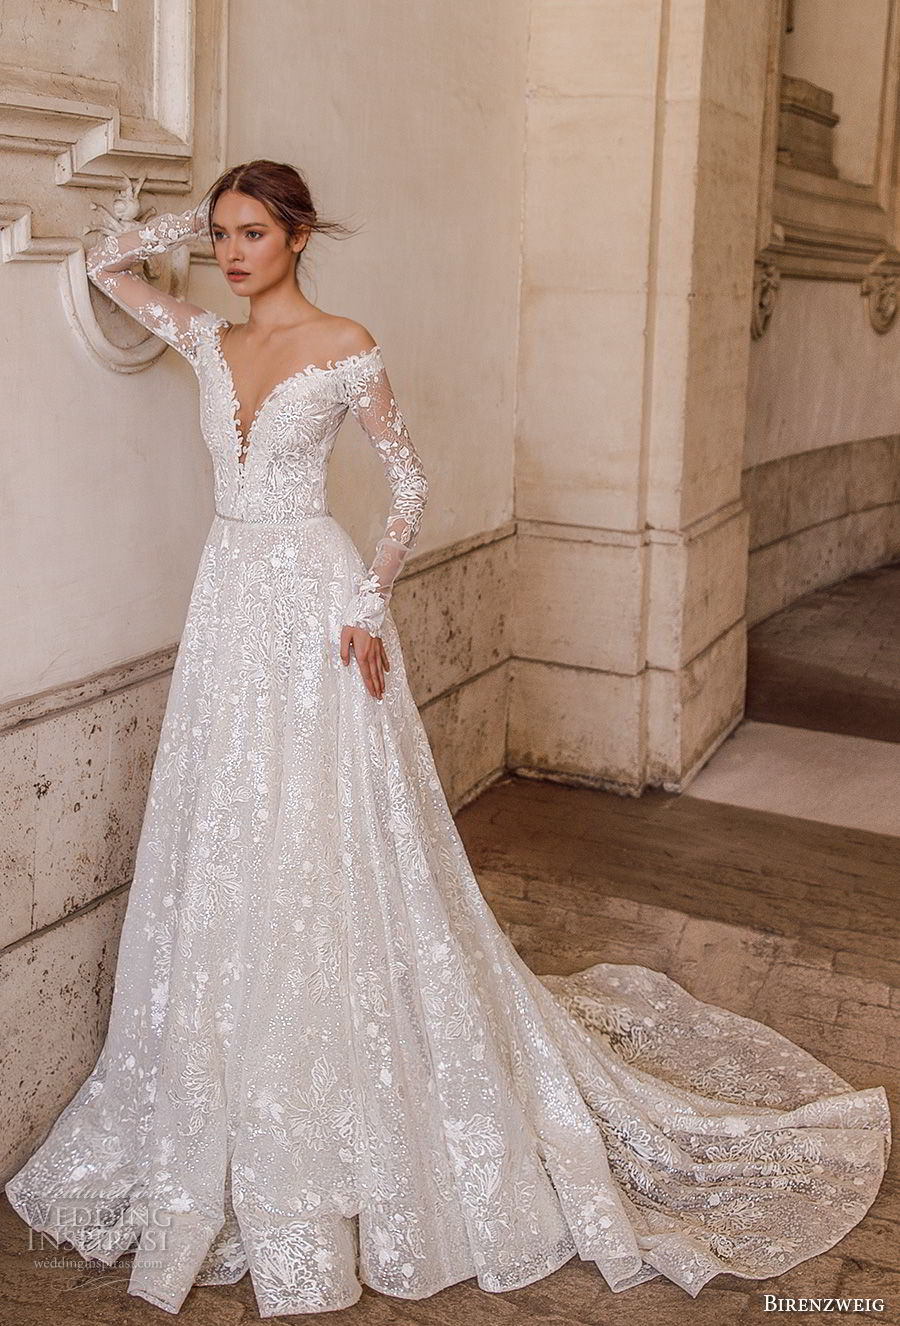 birenzweig 2018 bridal long sleeves off the shoulder deep plunging v neck full embellishment a line wedding dress sheer v back chapel train (1) mv